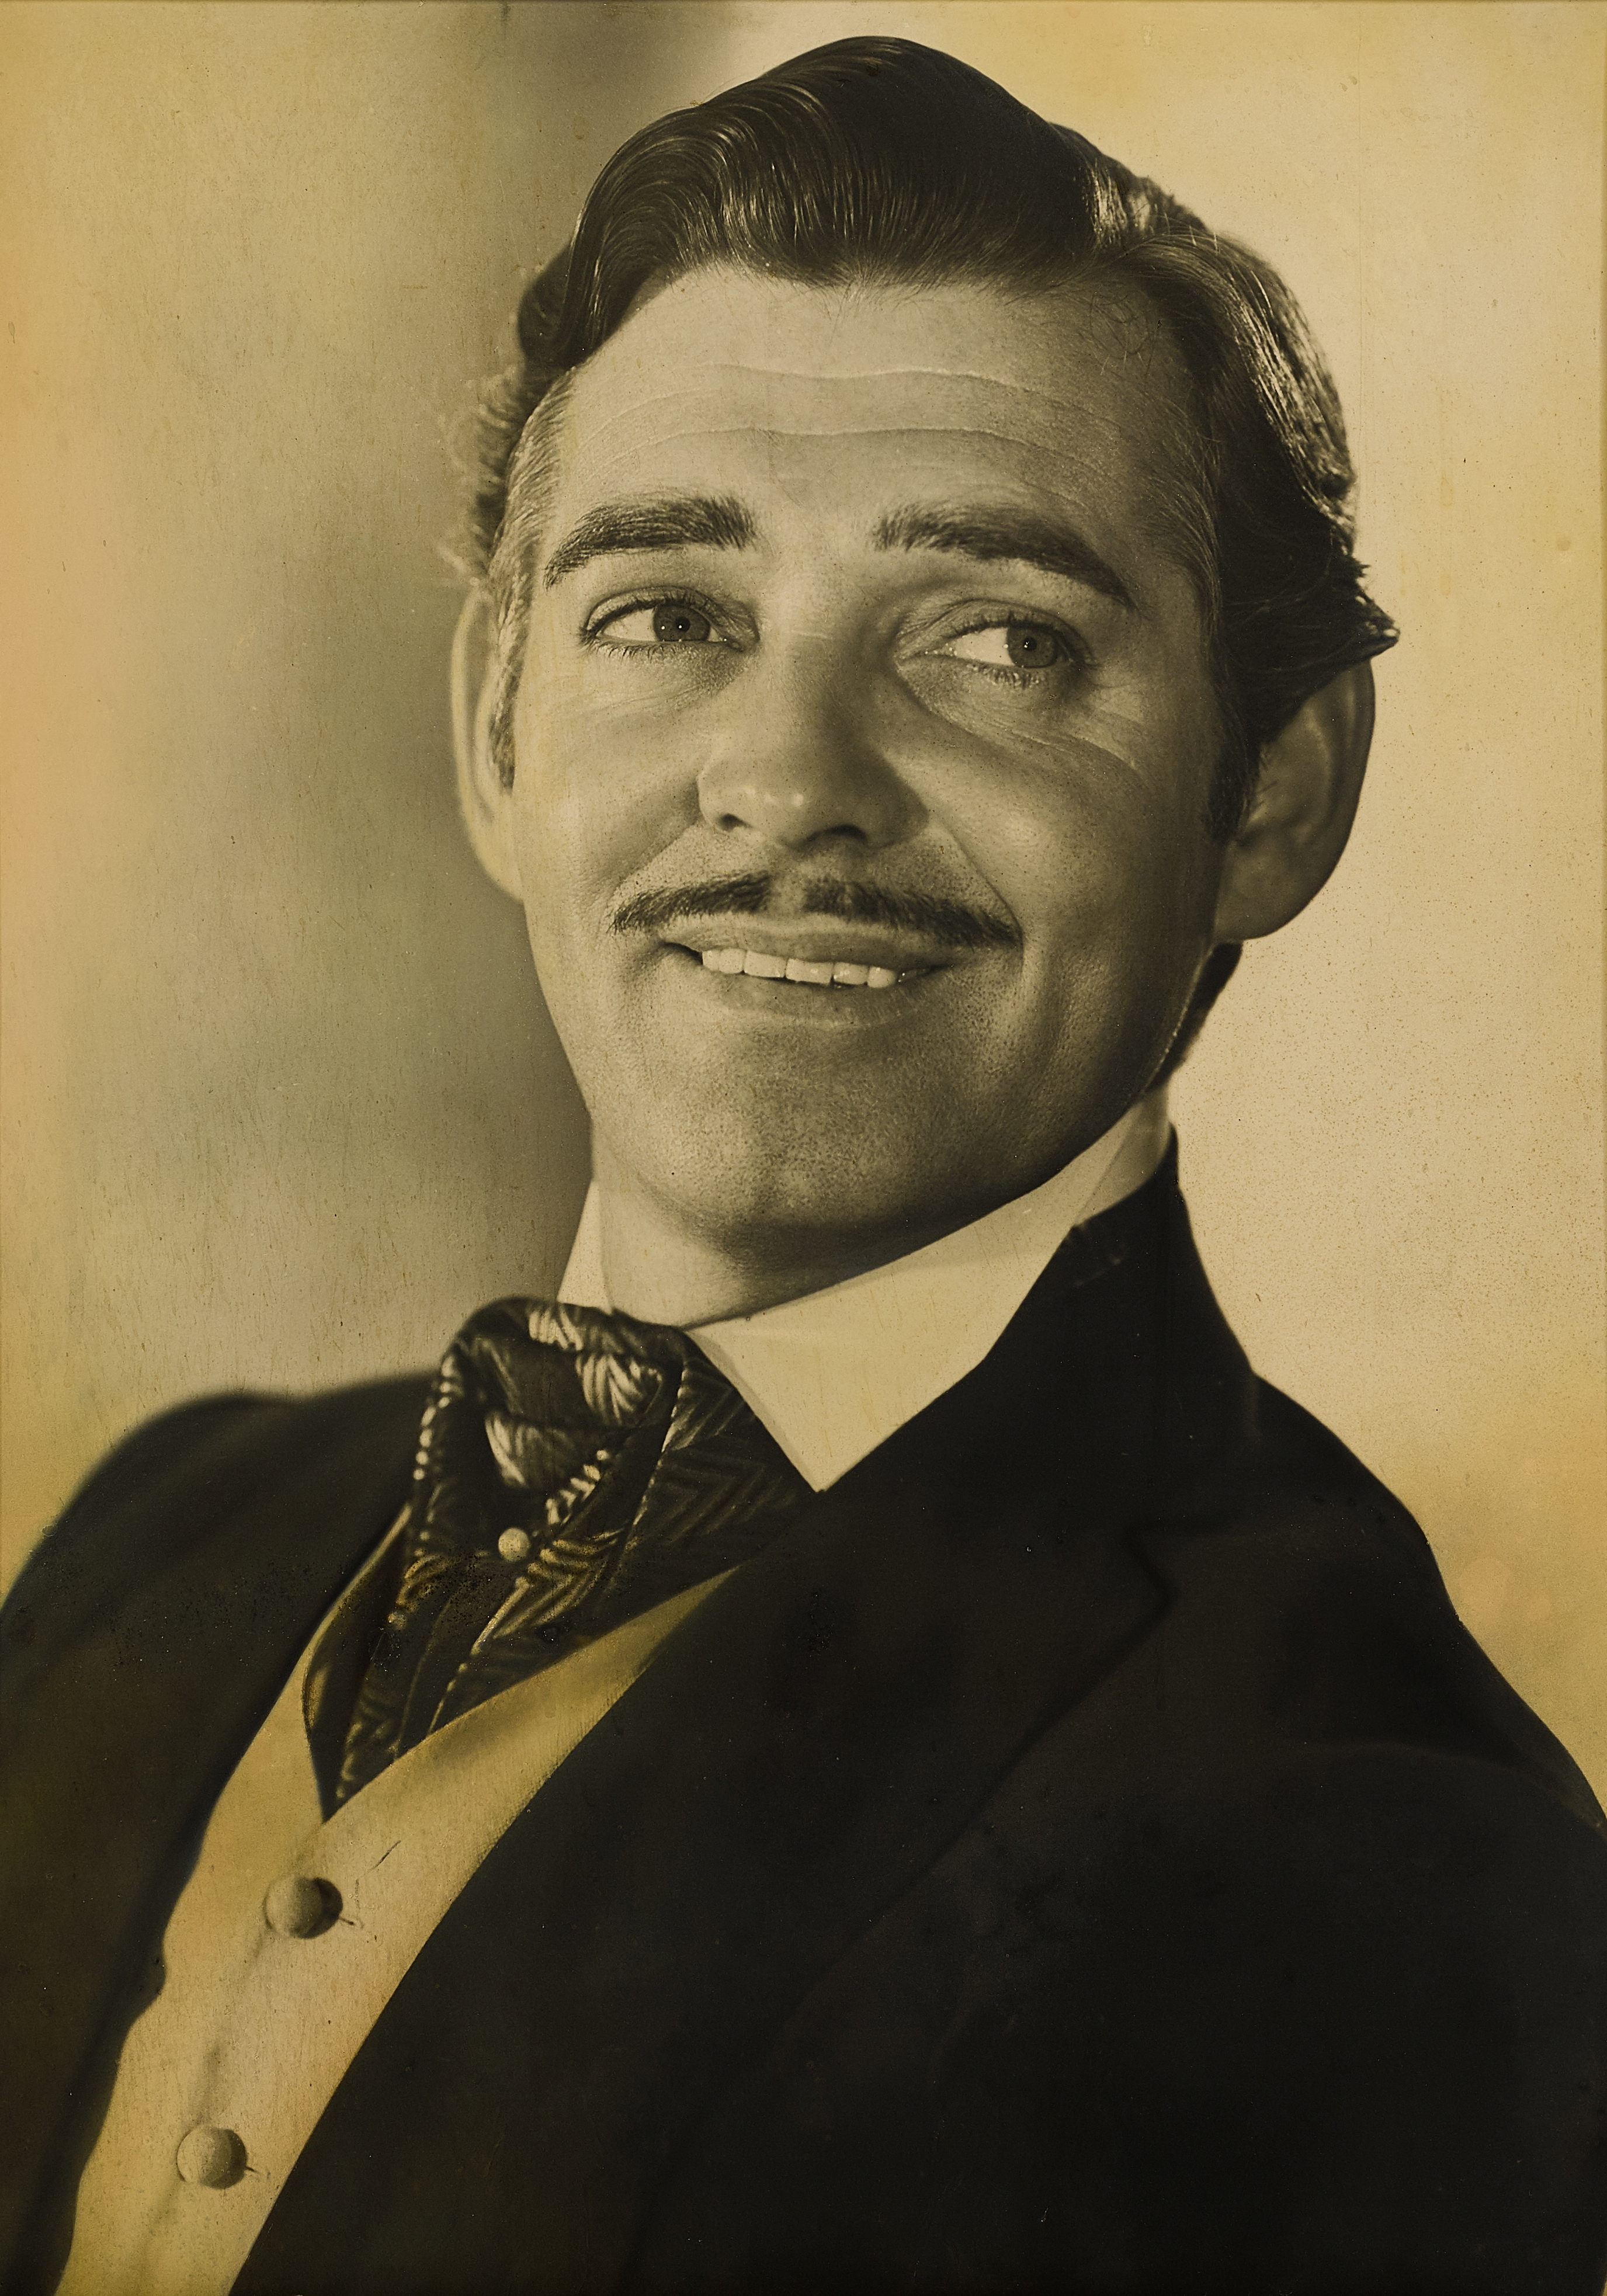 A Clark Gable oversized lobby portrait for Gone with the Wind